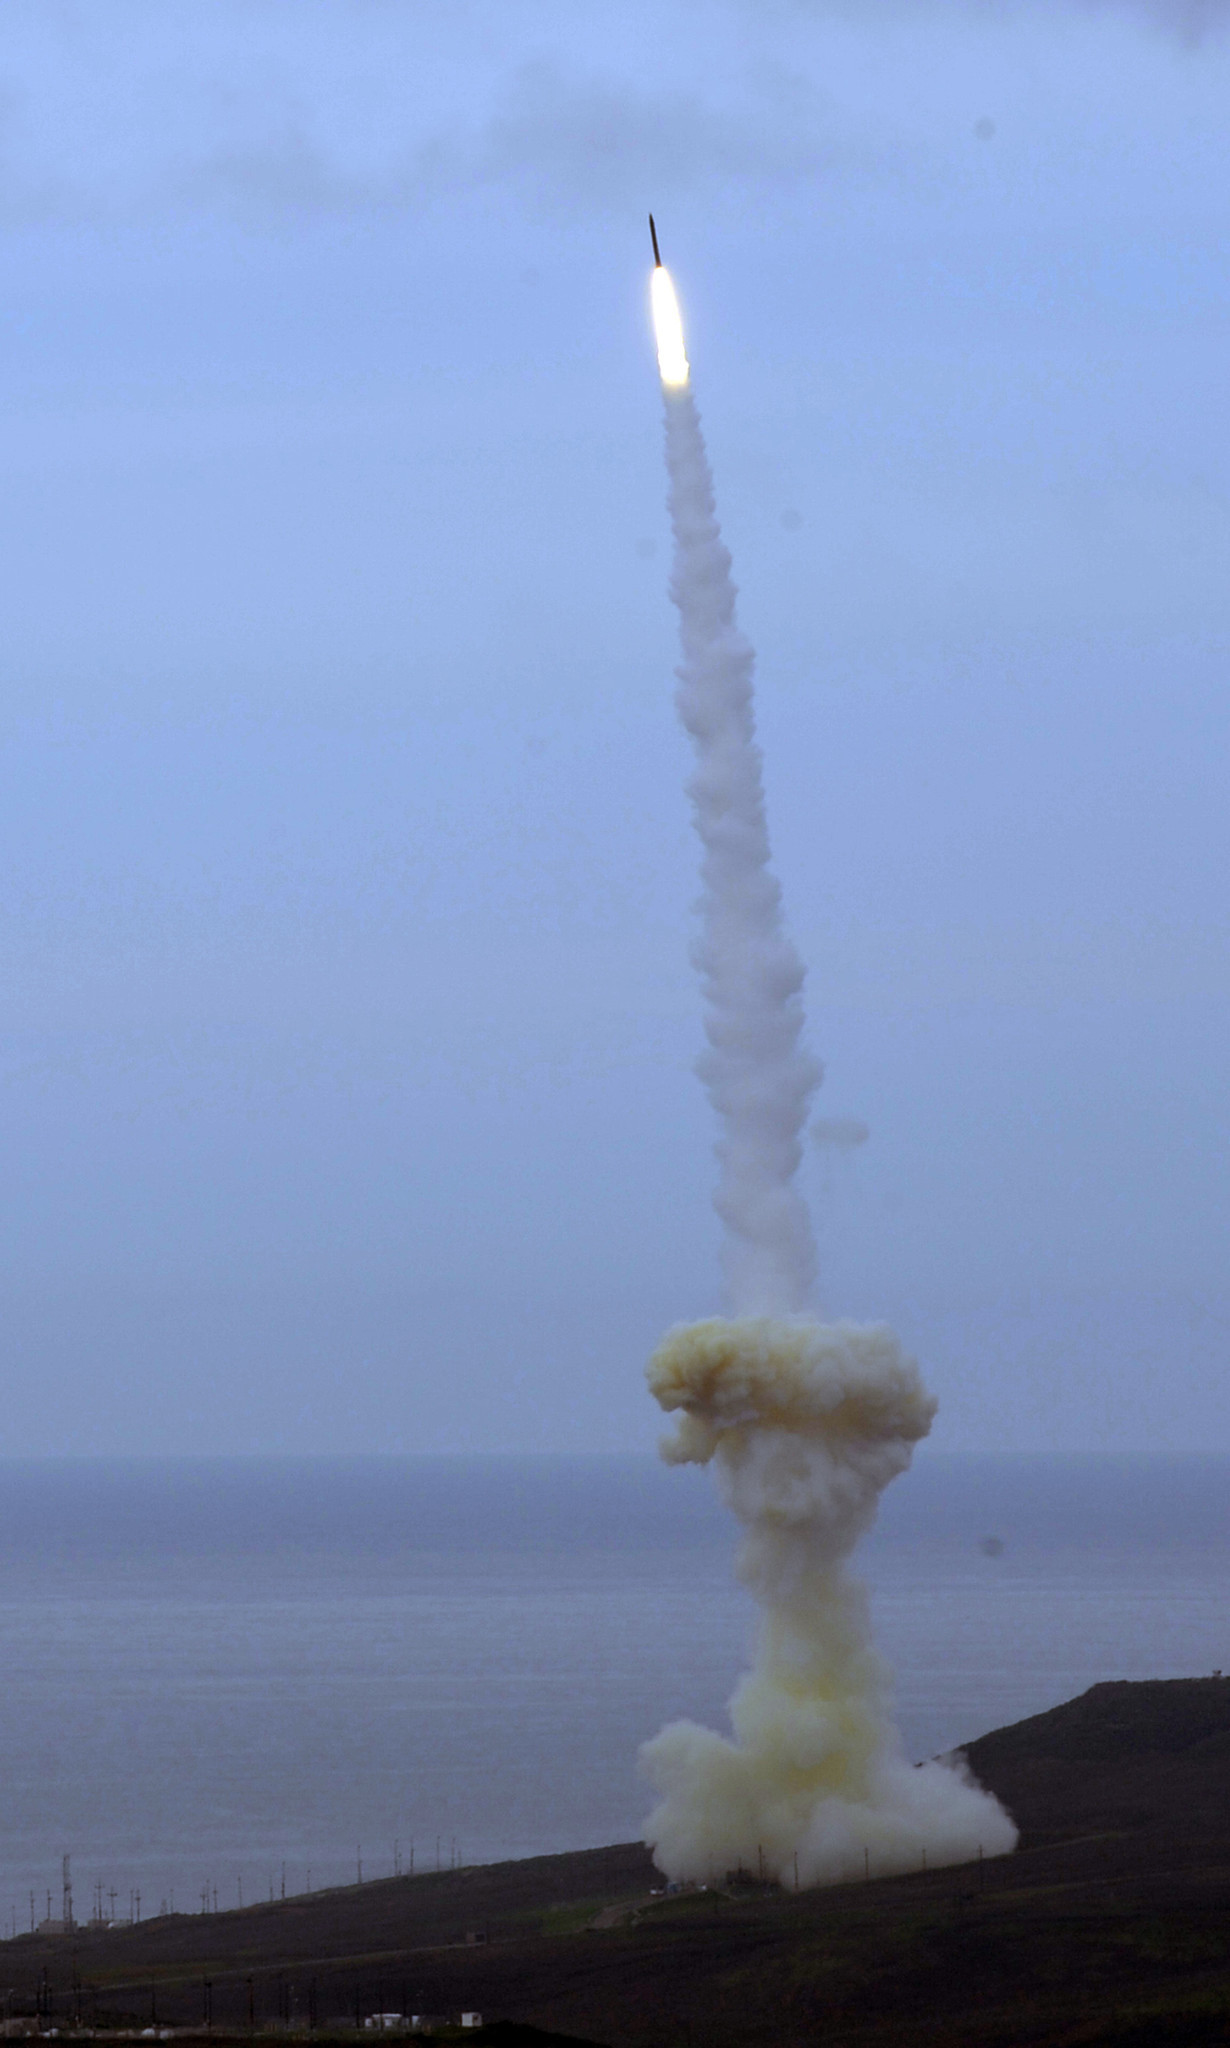 A rocket interceptor is launched from Vandenberg Air Force Base on Dec. 15, 2010. The interceptor's kill vehicle failed to intercept and destroy a mock enemy warhead.